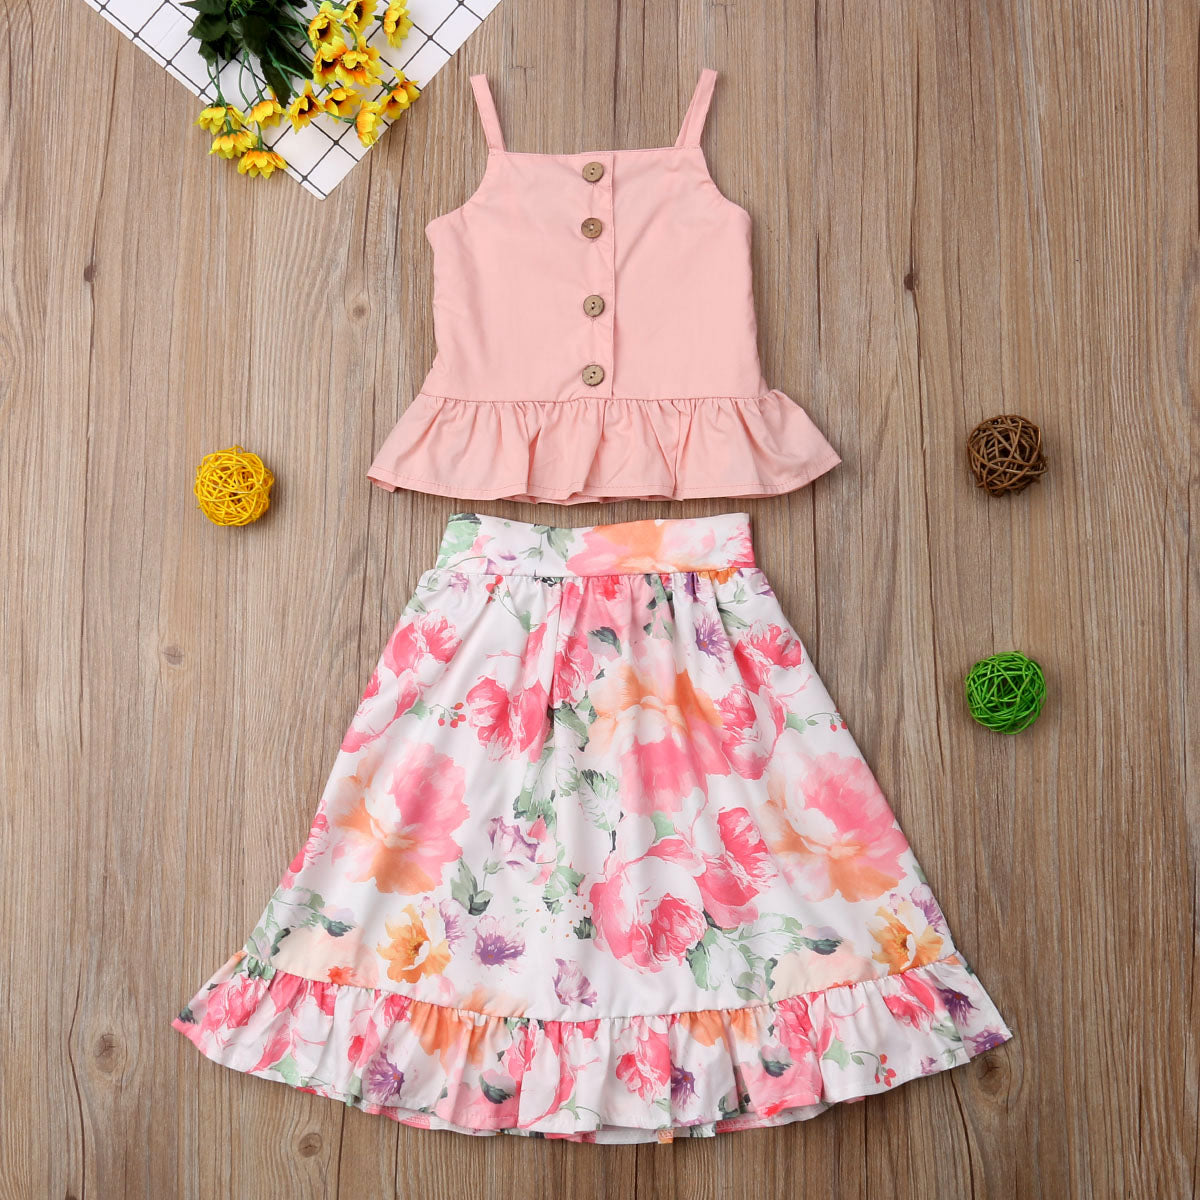 Peach Sling Top & Floral Skirt : 1-6 years